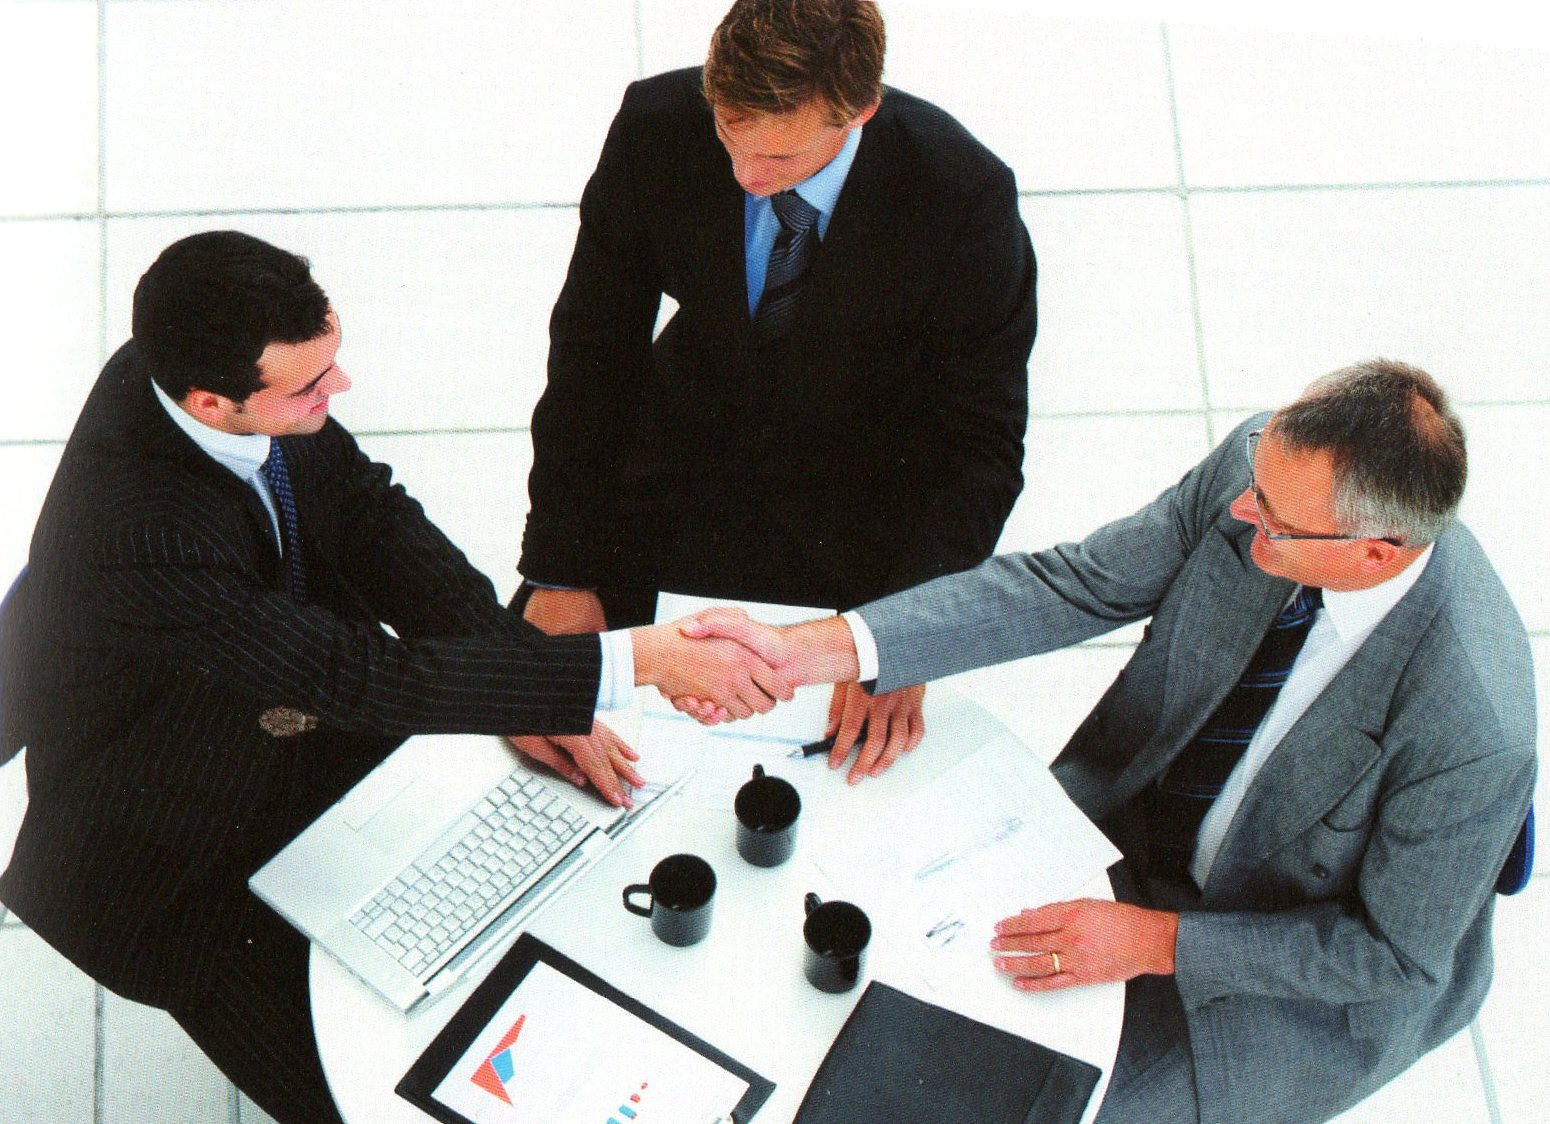 Principal and Agents in Negotiation